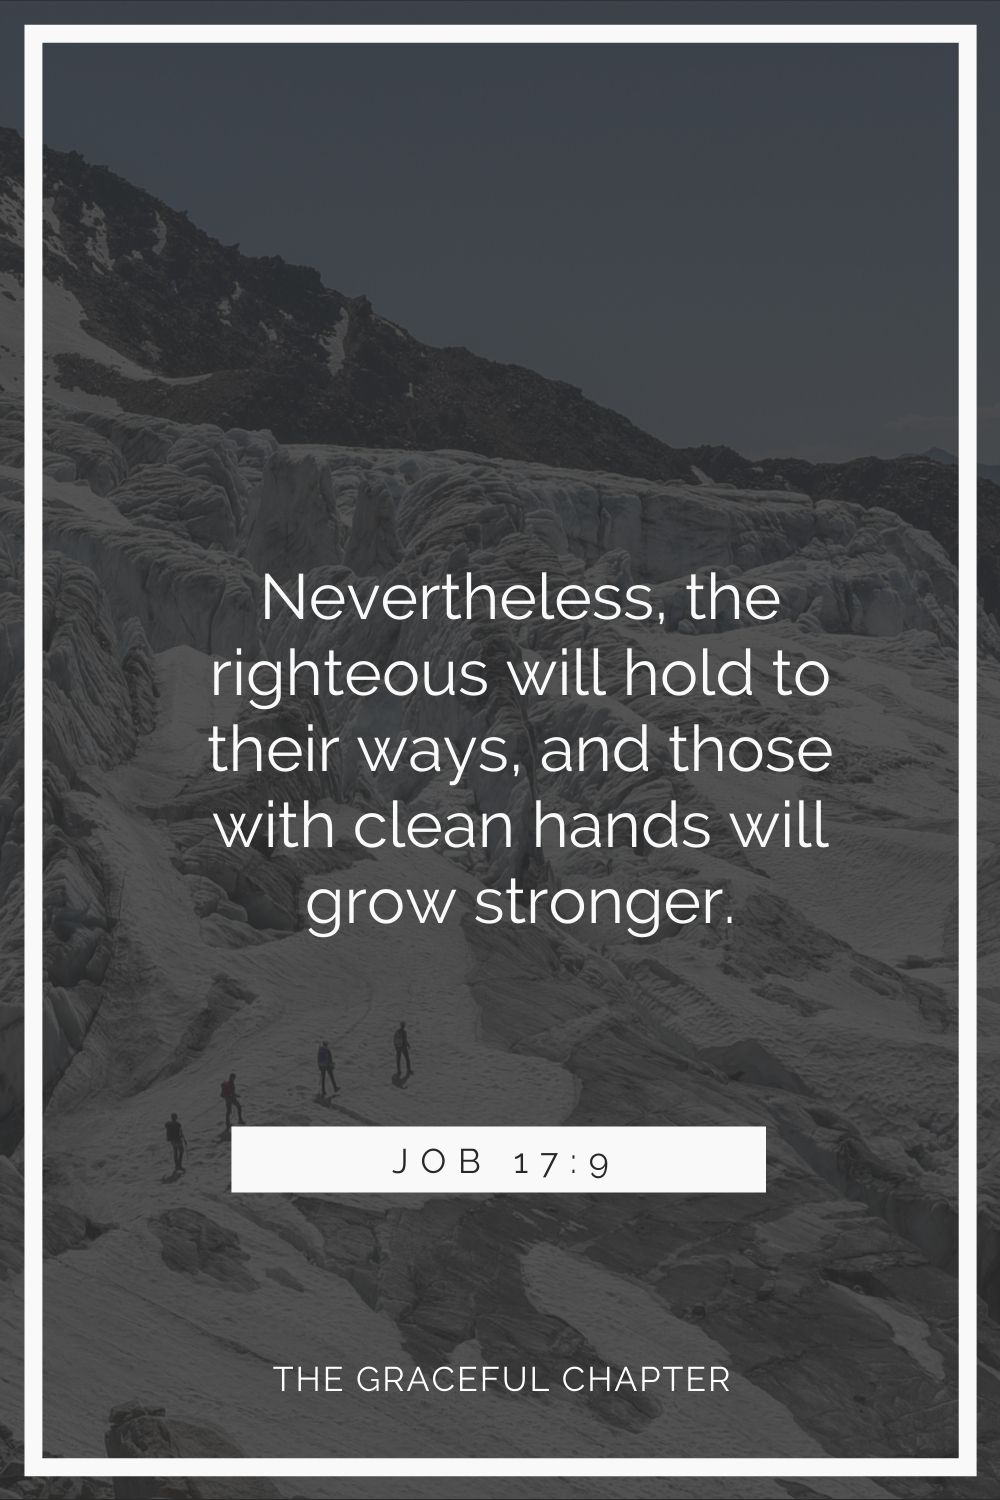 Nevertheless, the righteous will hold to their ways, and those with clean hands will grow stronger. Job 17:9